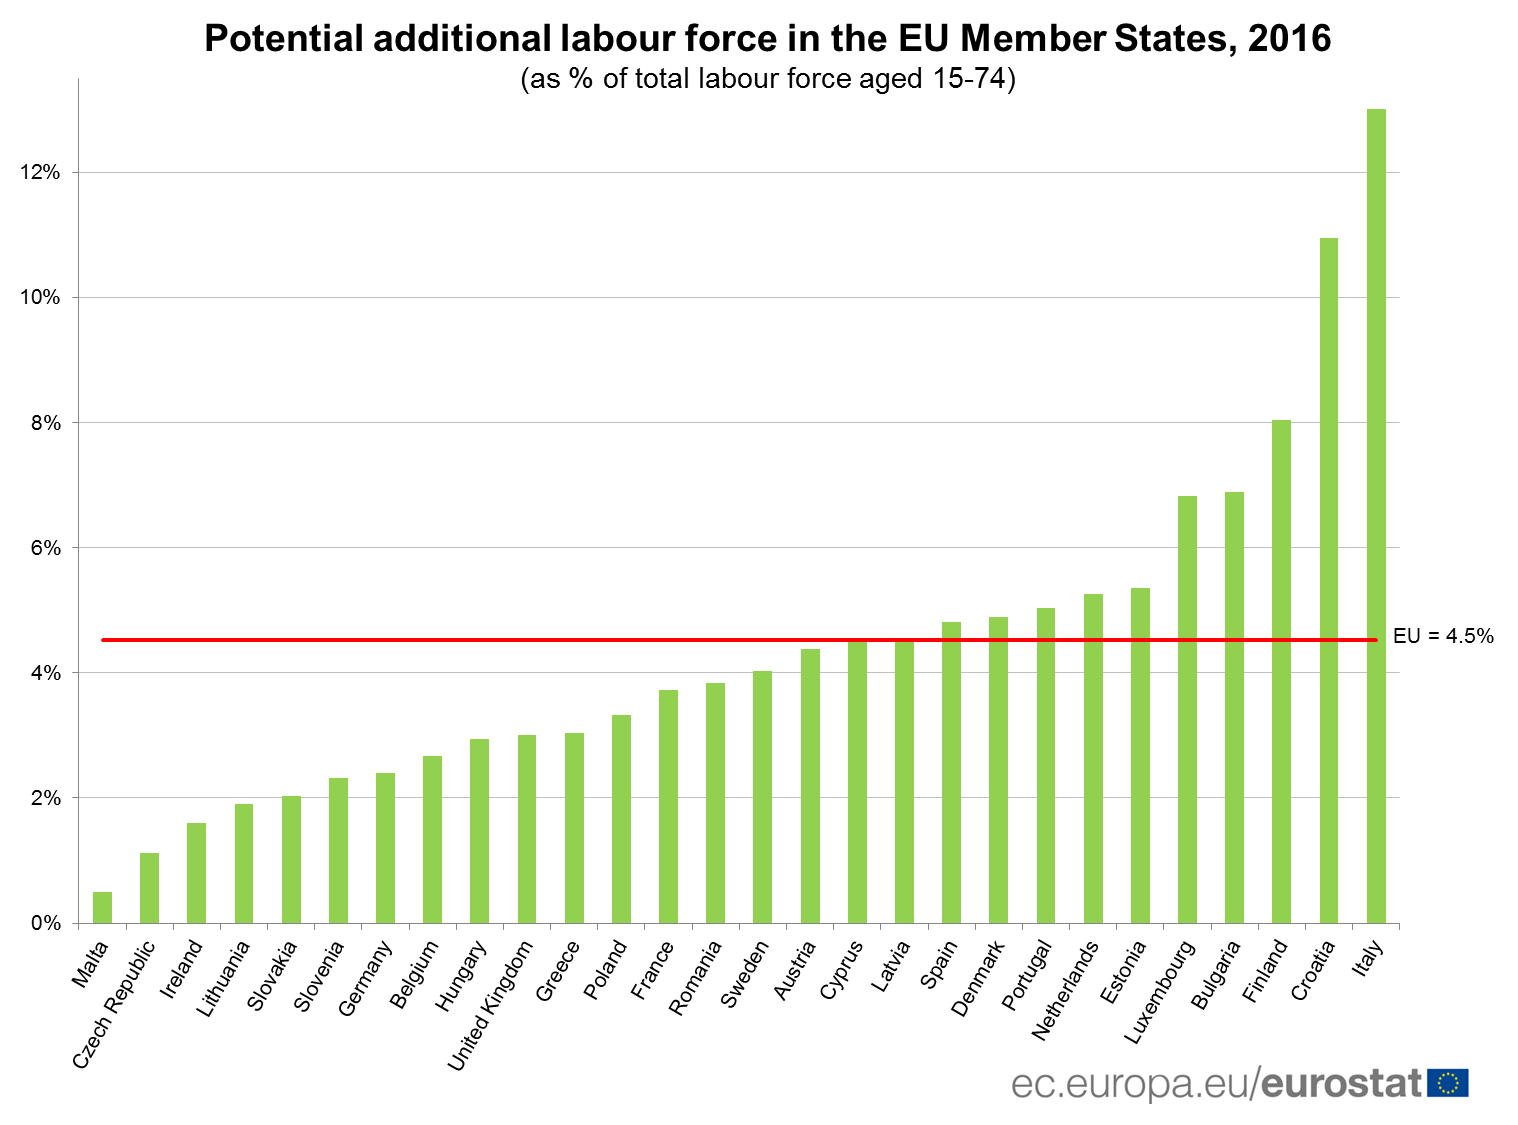 Potential additional labour force in the EU, 2016